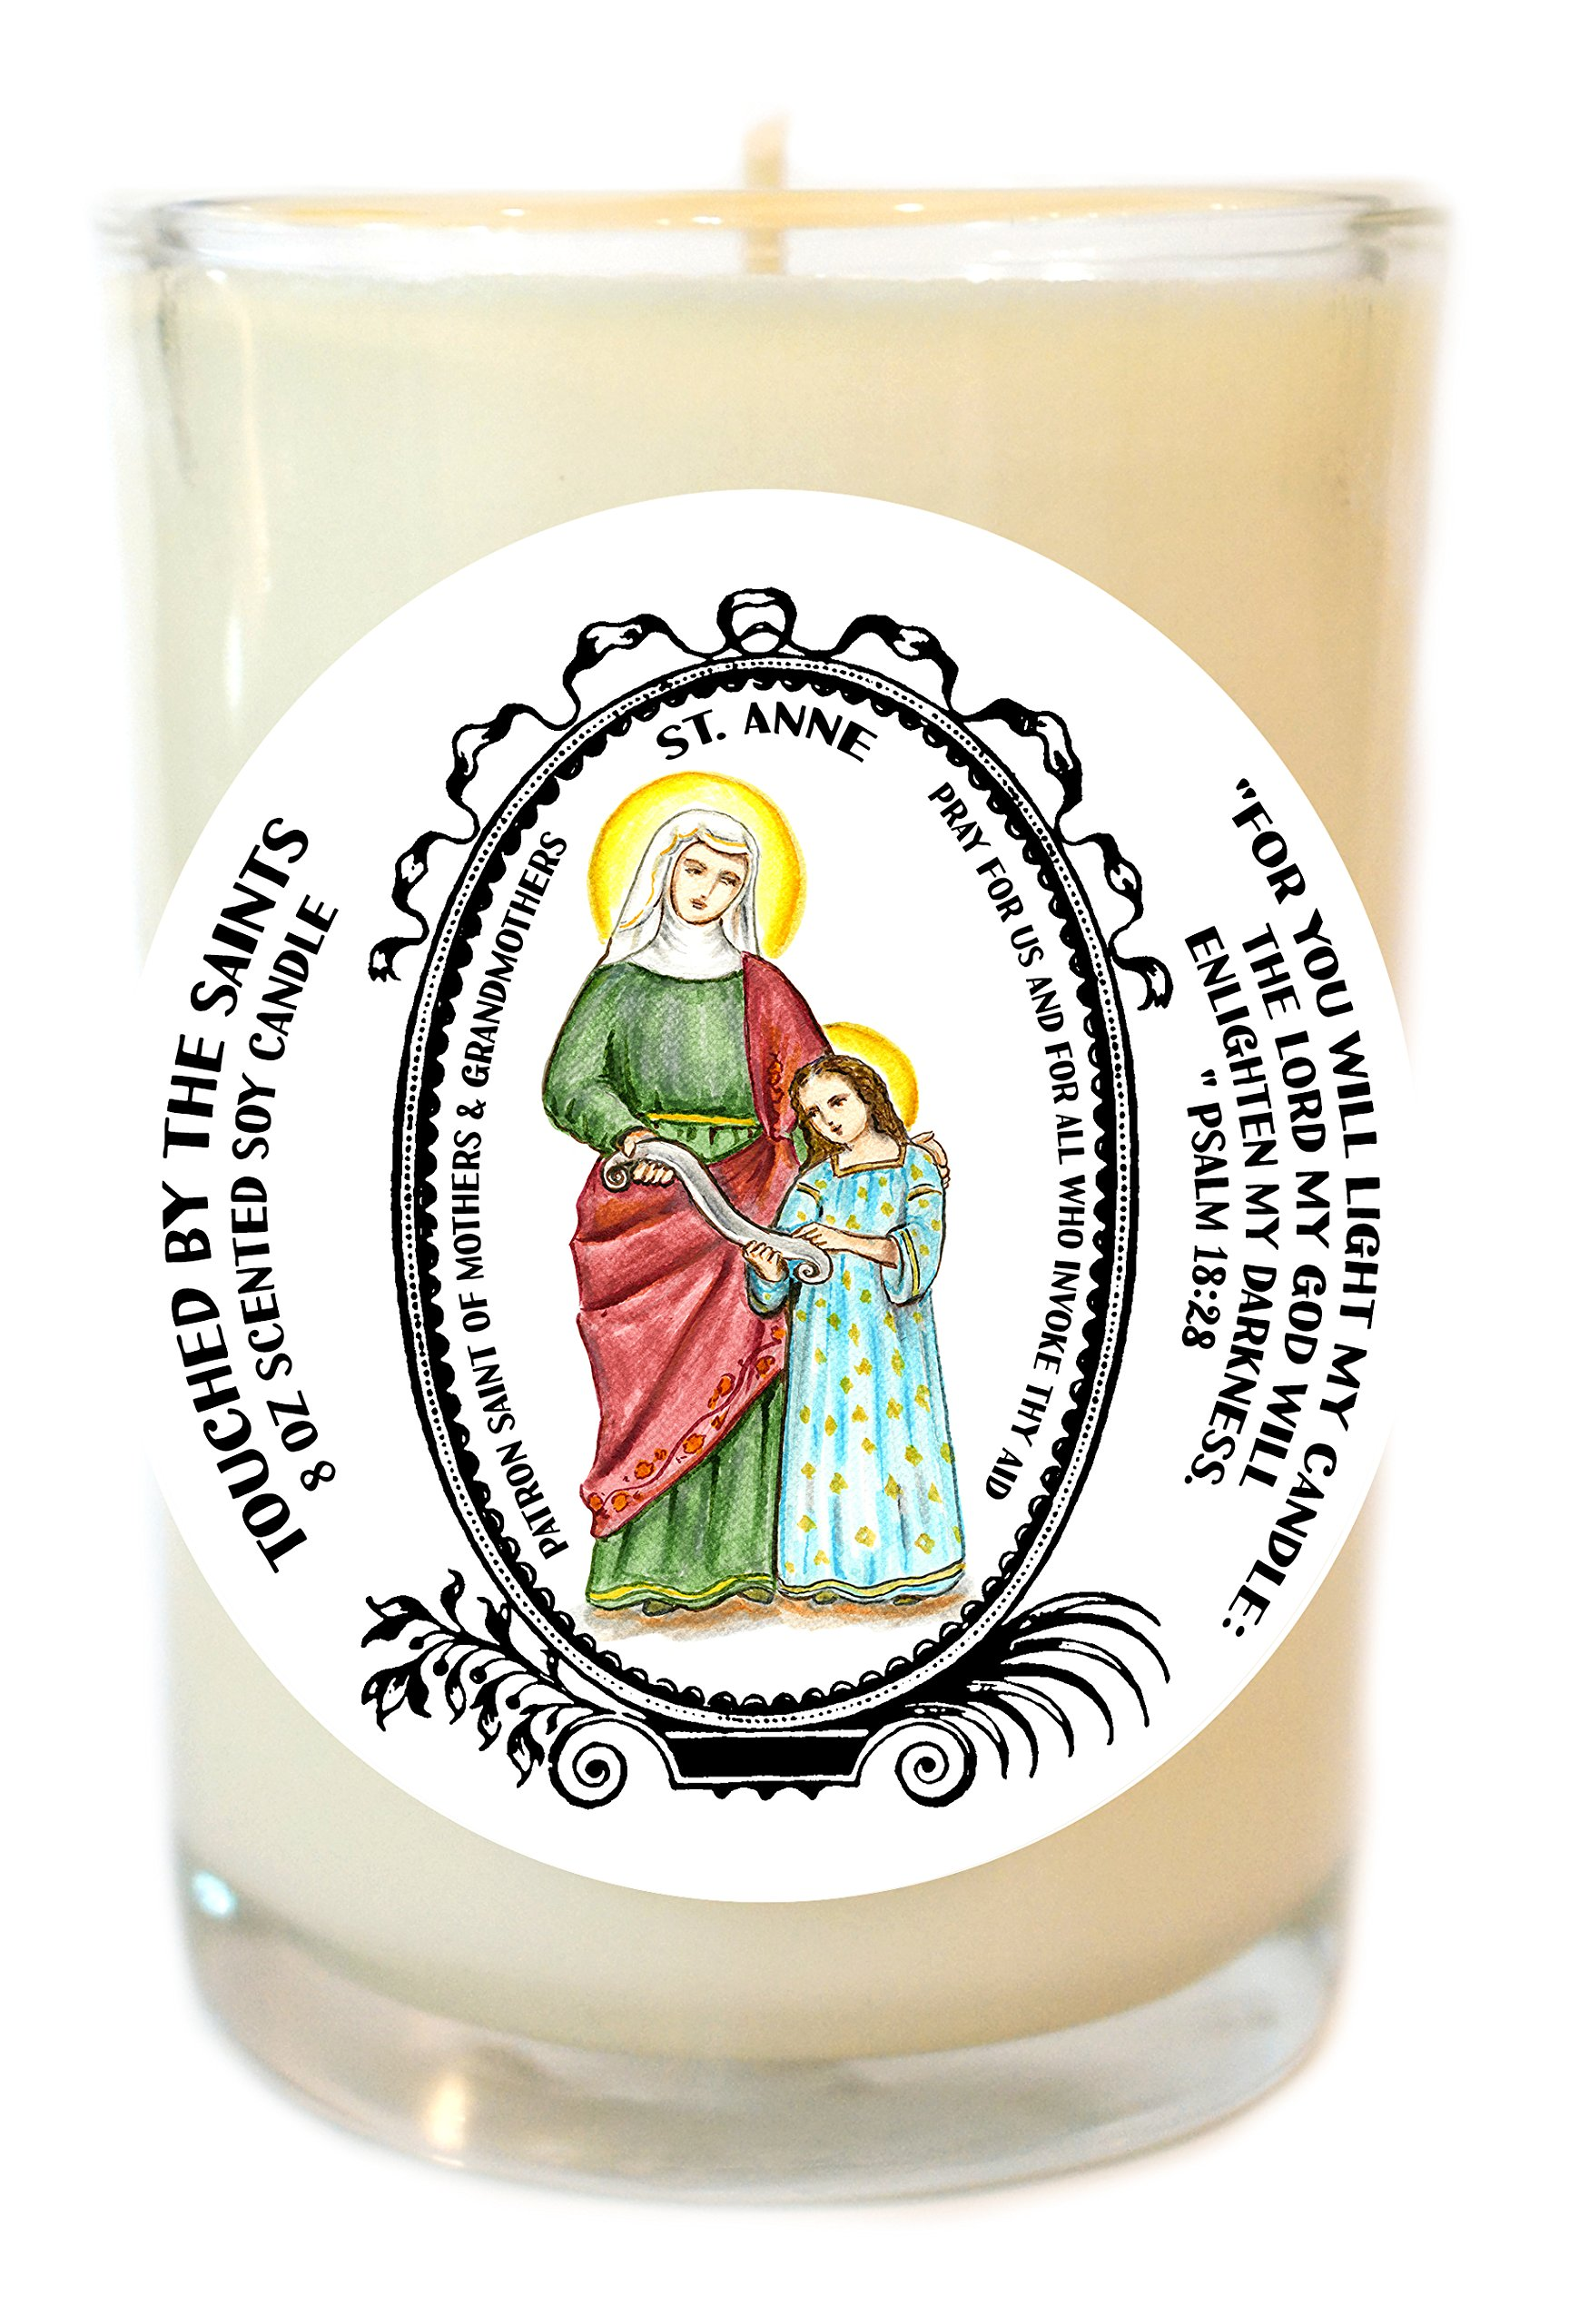 St Anne Mother of Mary for Moms & Grandmothers 8 Oz Scented Soy Candle